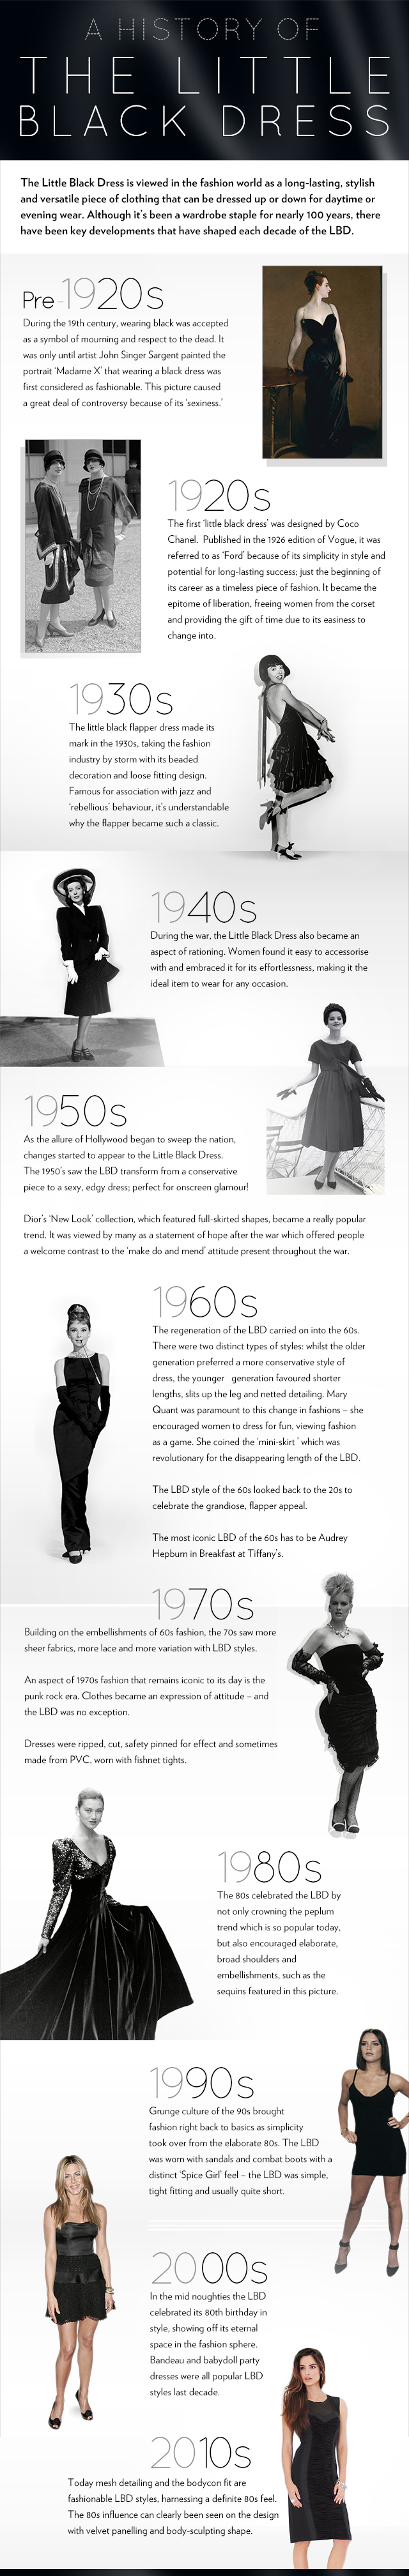 History Of The Little Black Dress Visual Ly